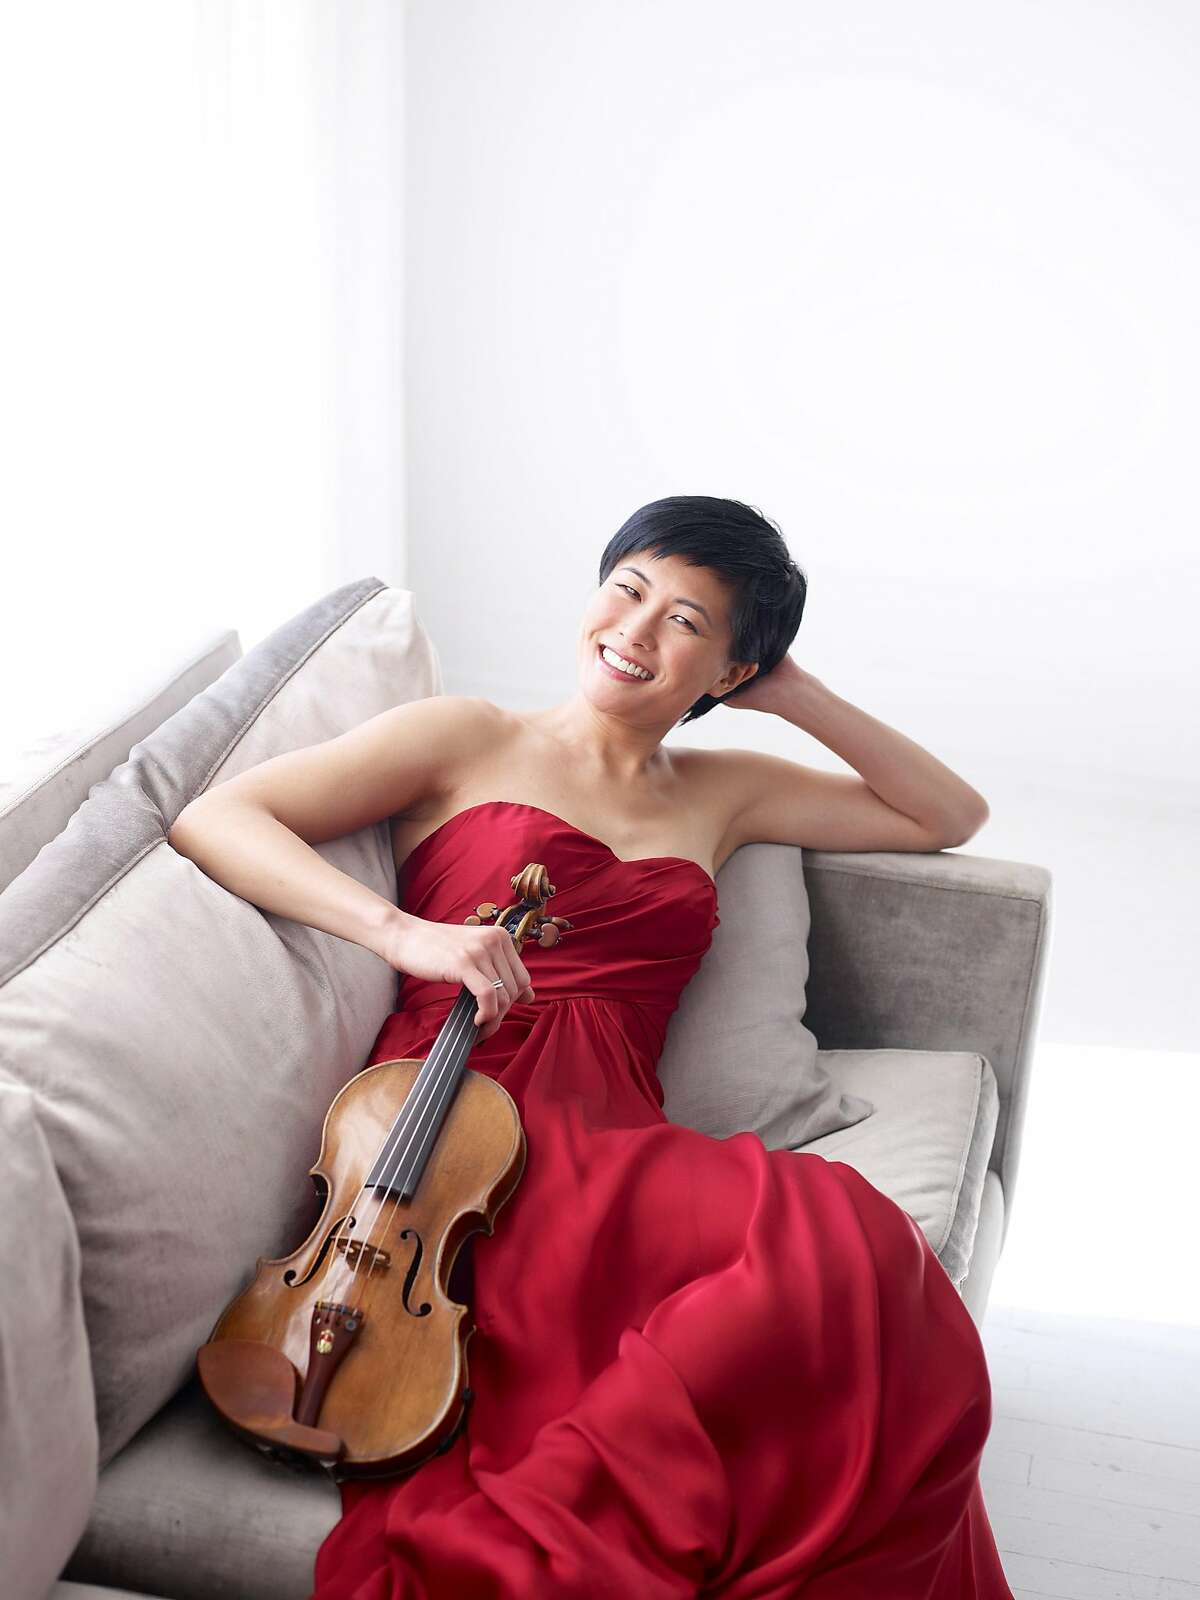 Violinist Jennifer Koh will perform with the San Antonio Symphony. JENNIFER KOH - violinist